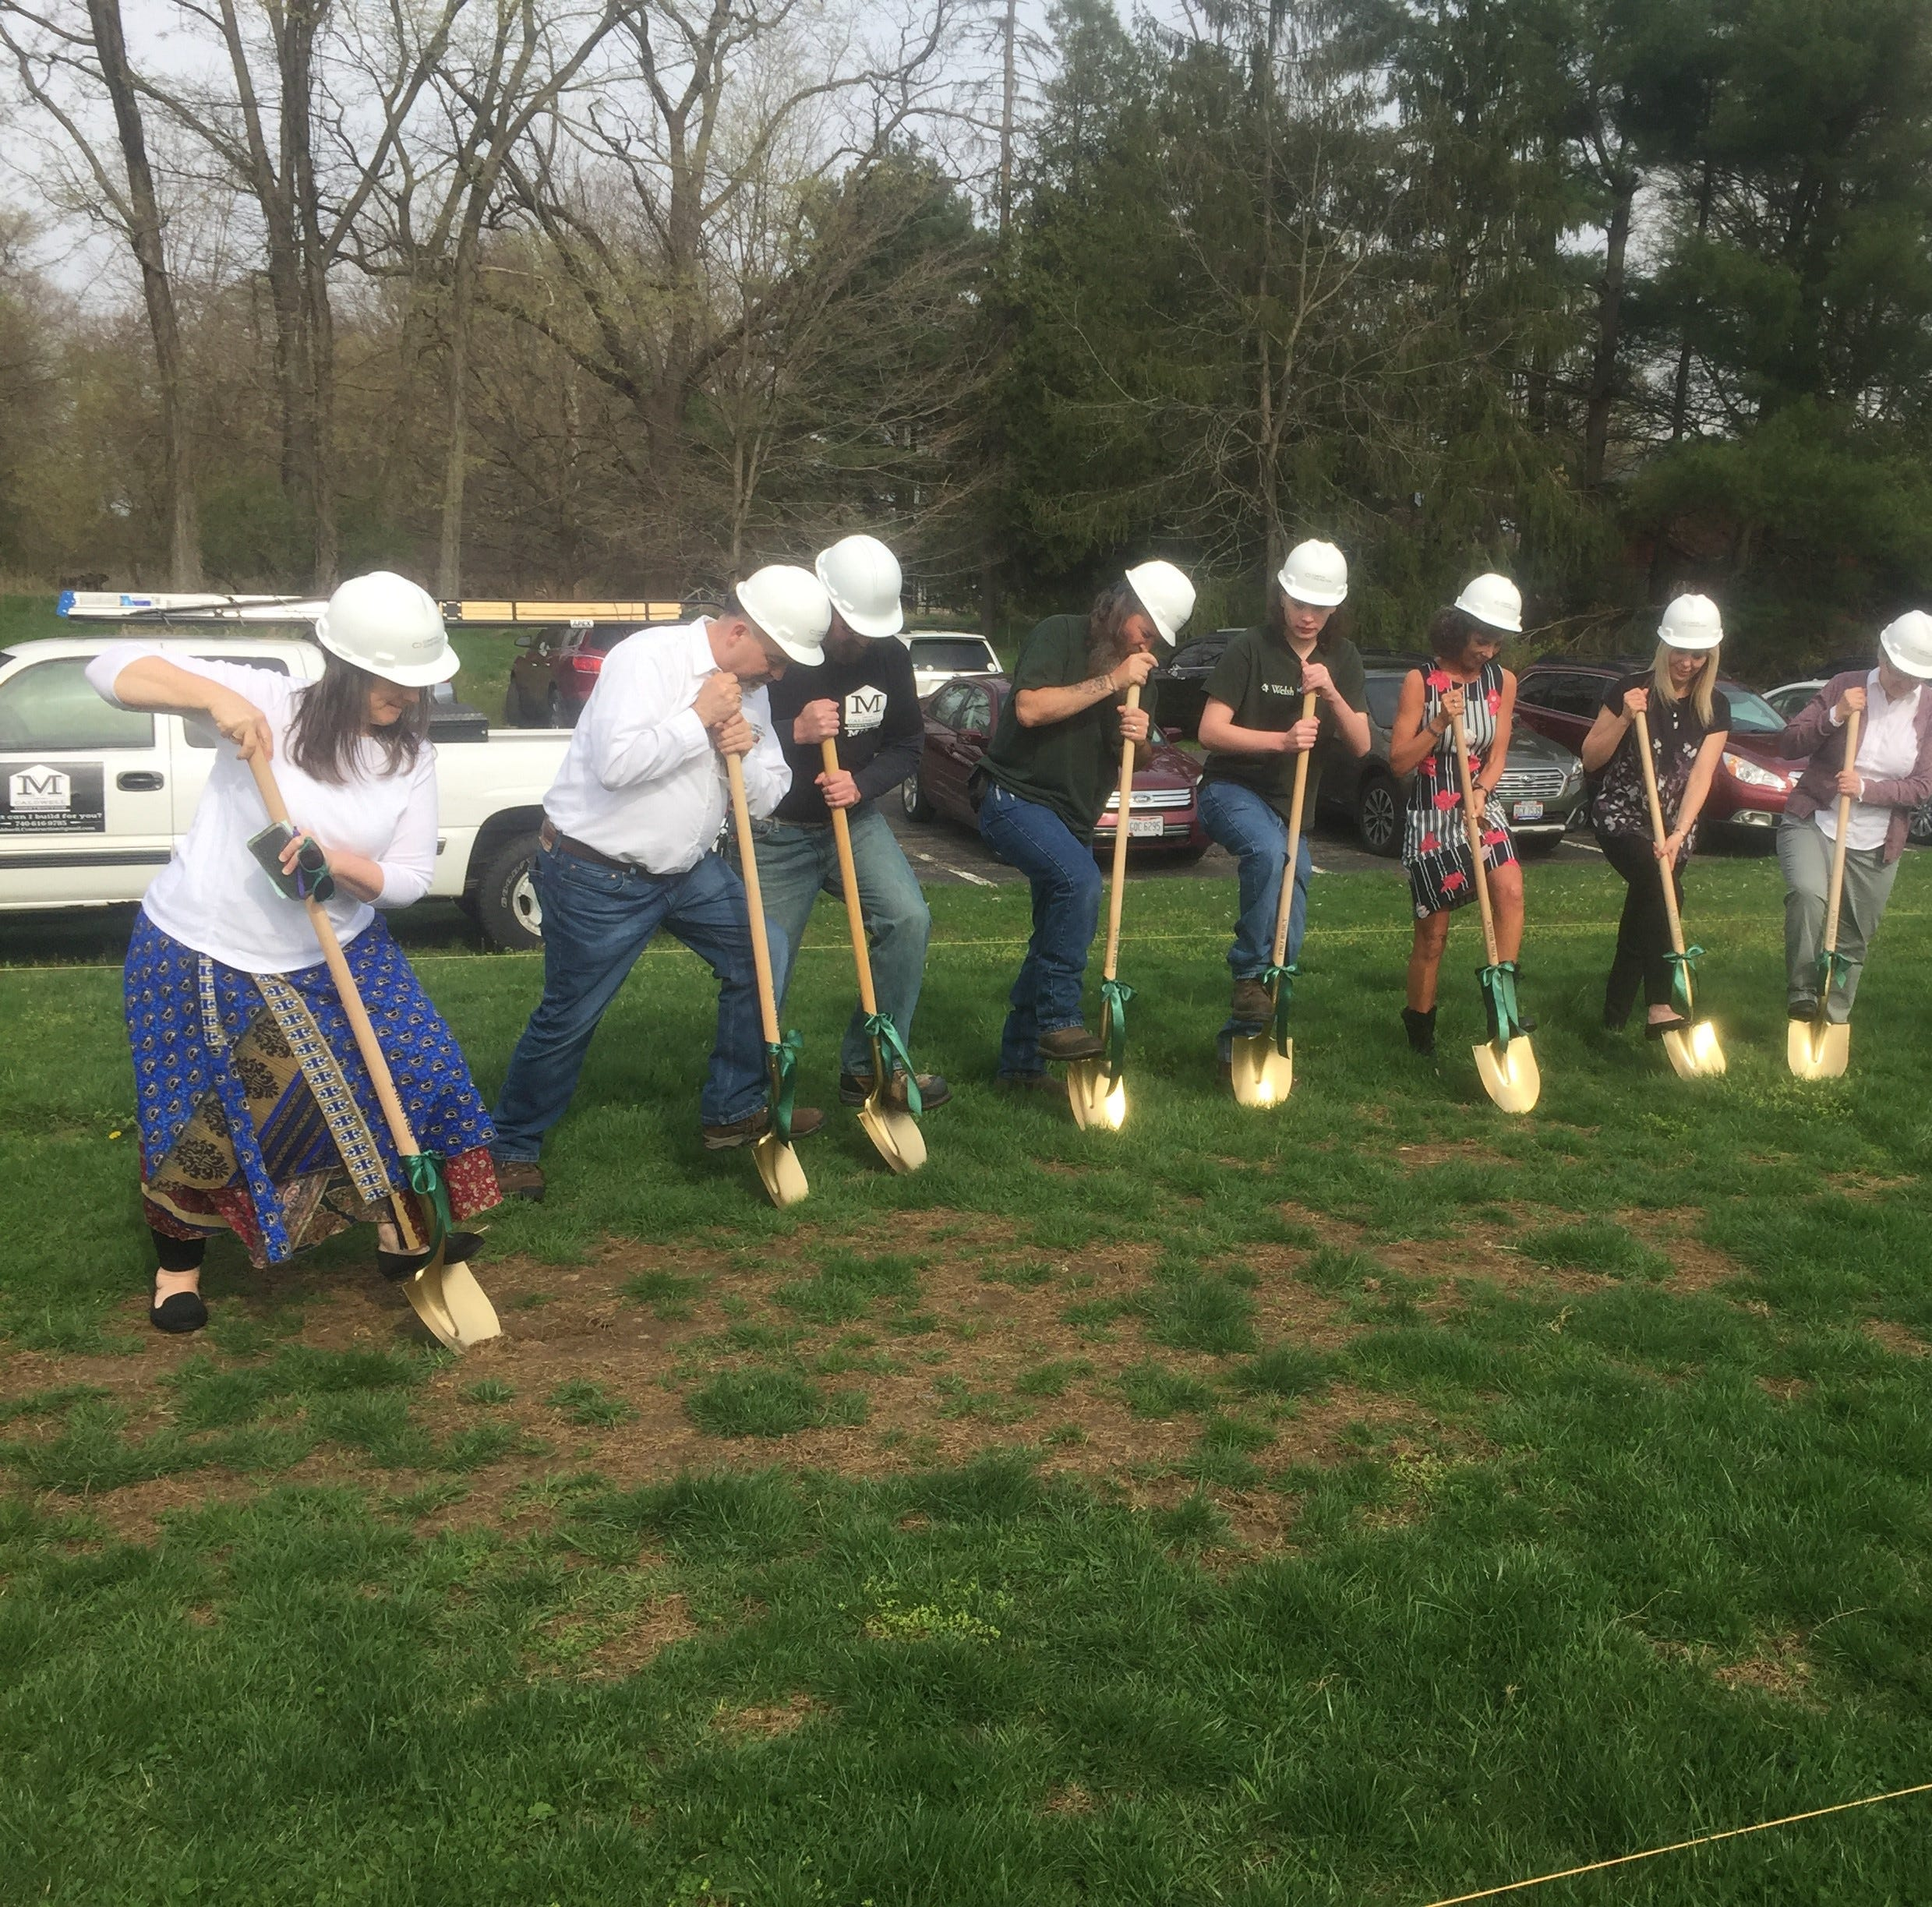 Ground broken for new Welsh Hills High School